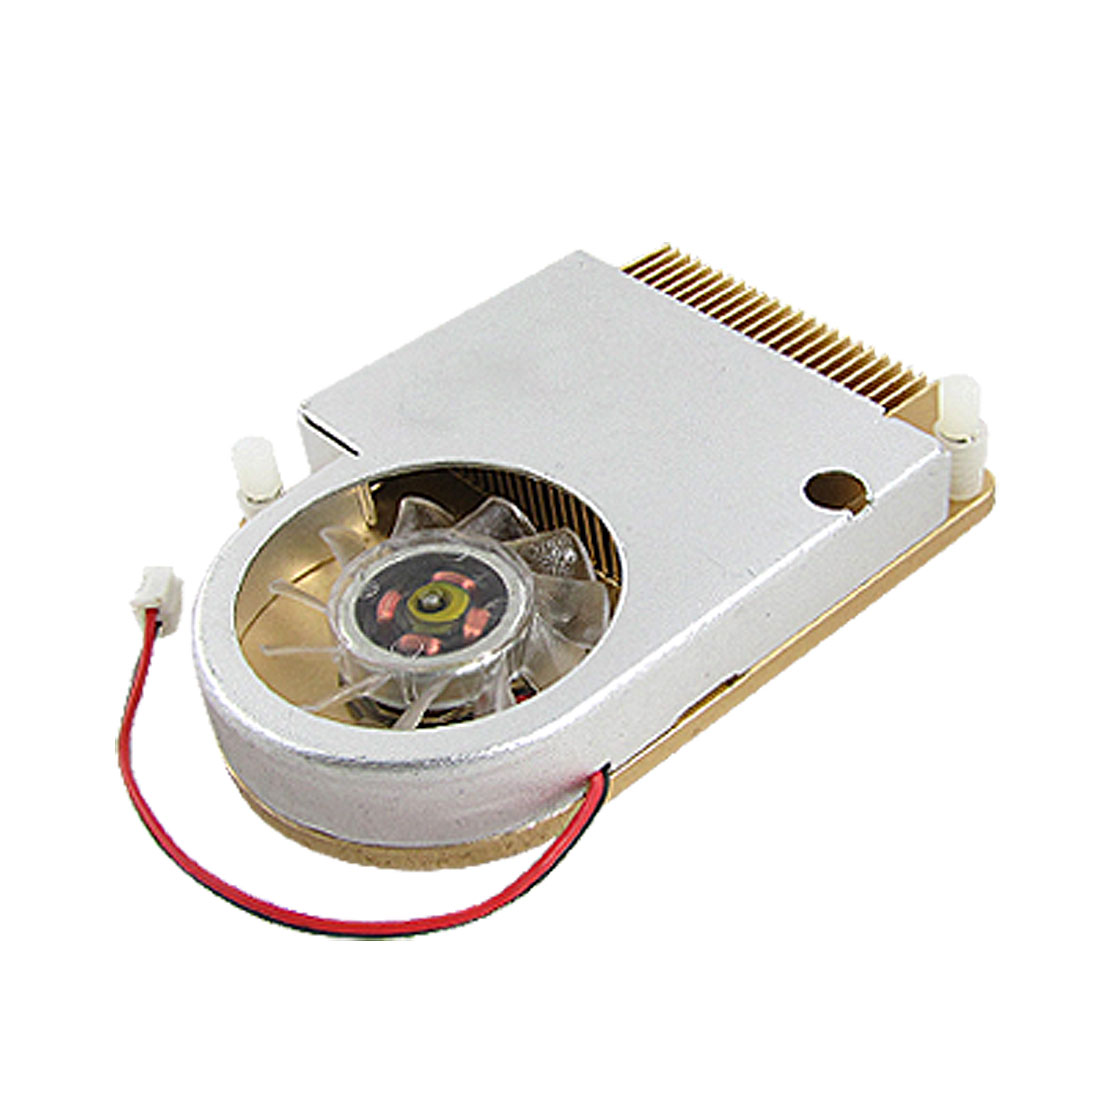 PC Computer 2-Terminal VGA Video Card Cooling Fan Cooler Heatsink